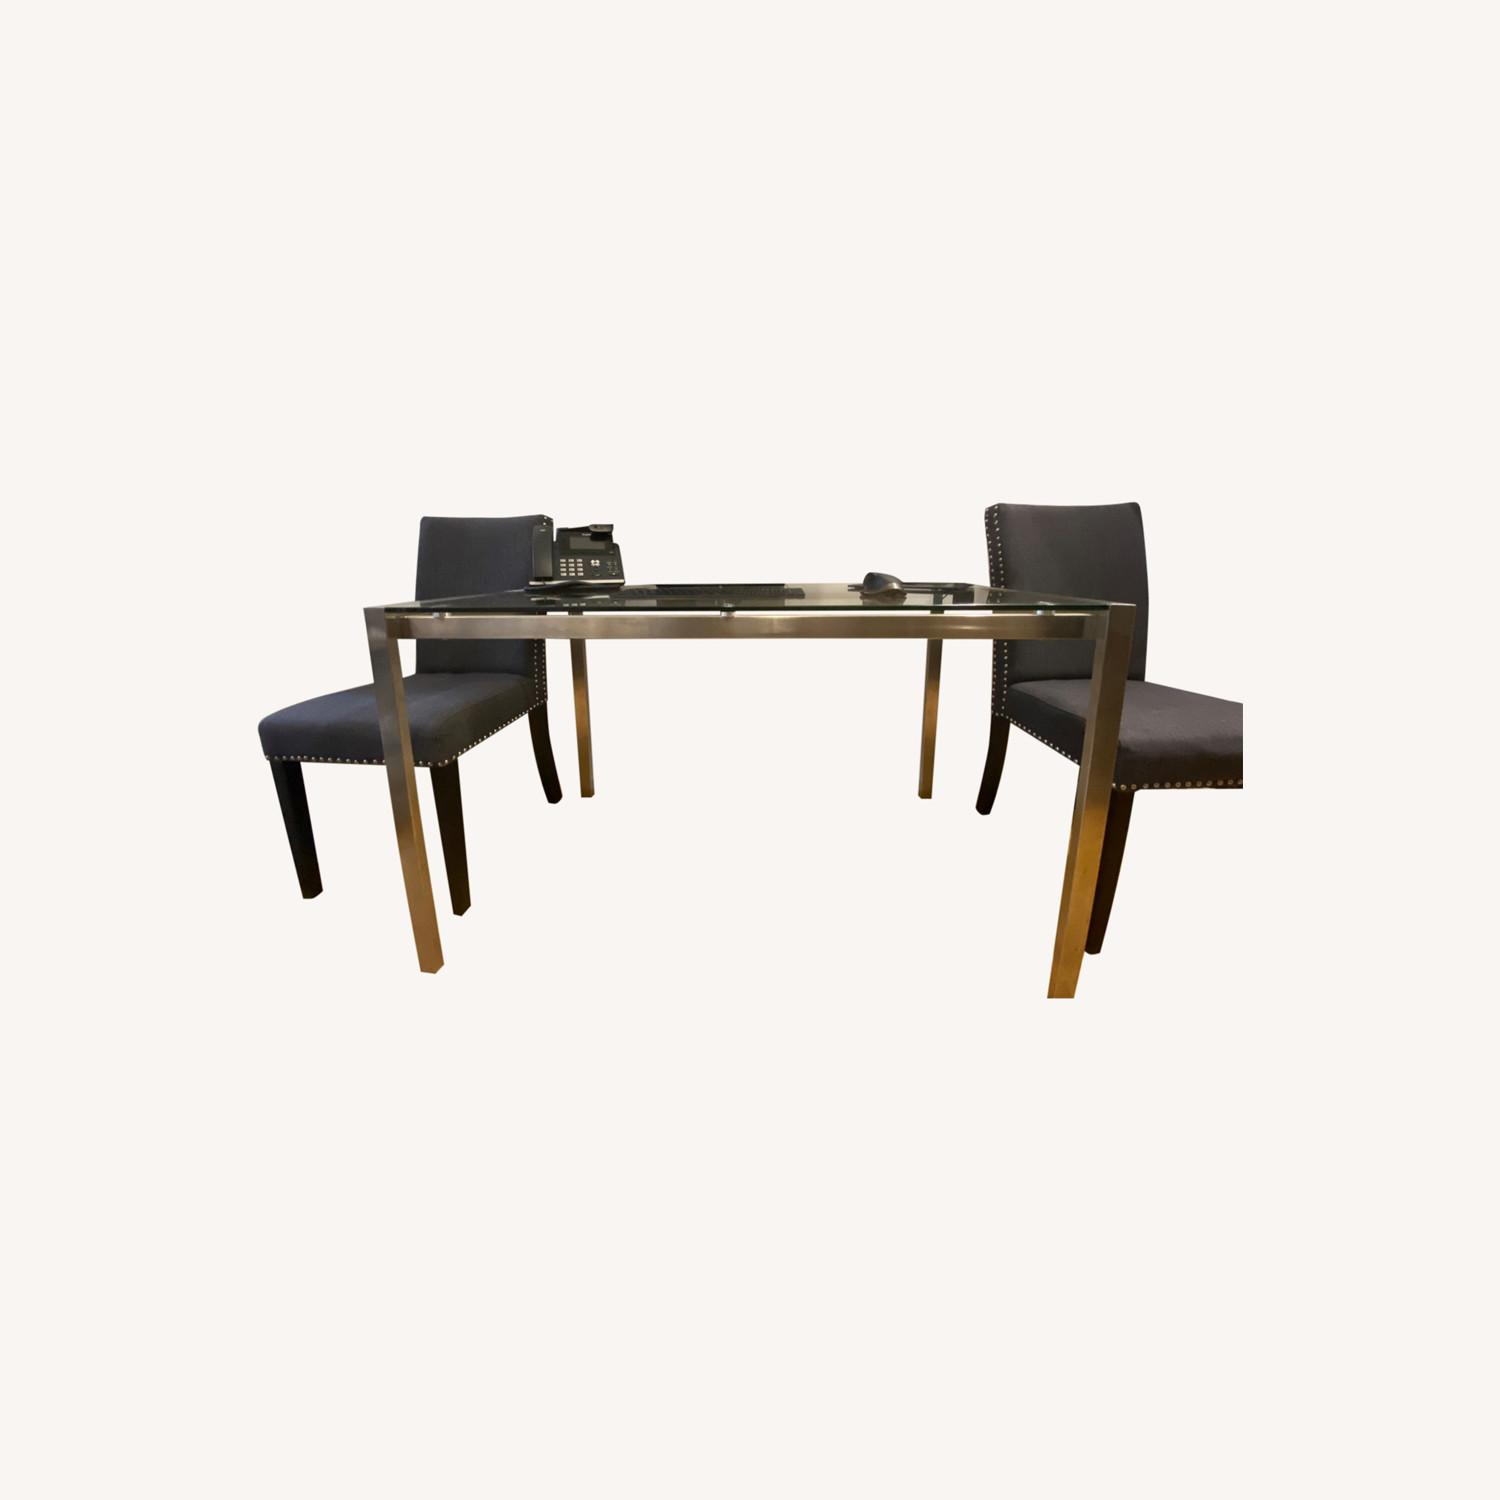 Baxton Studio Glass Desk or Dining Table w 2 Gray Chairs - image-0